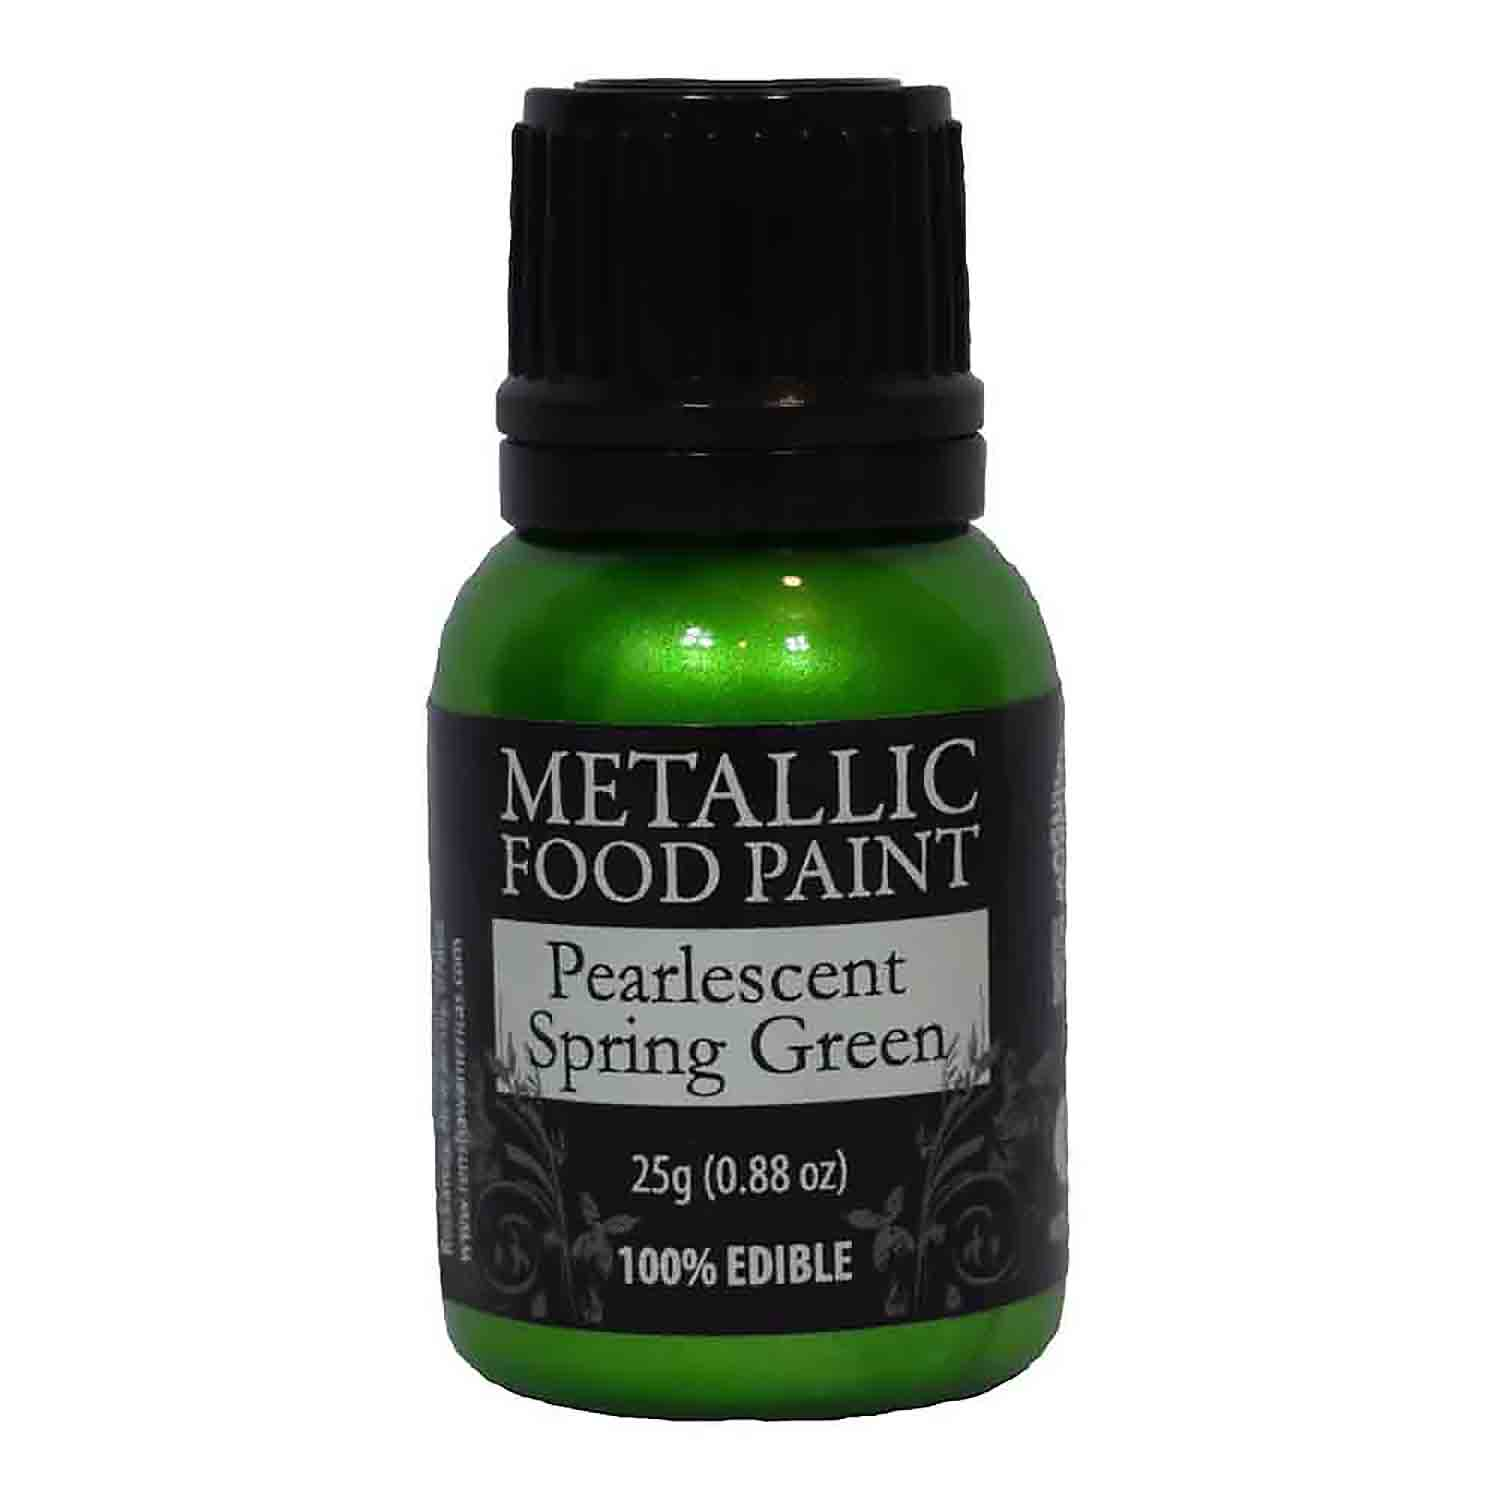 Pearlescent Spring Green Metallic Food Paint